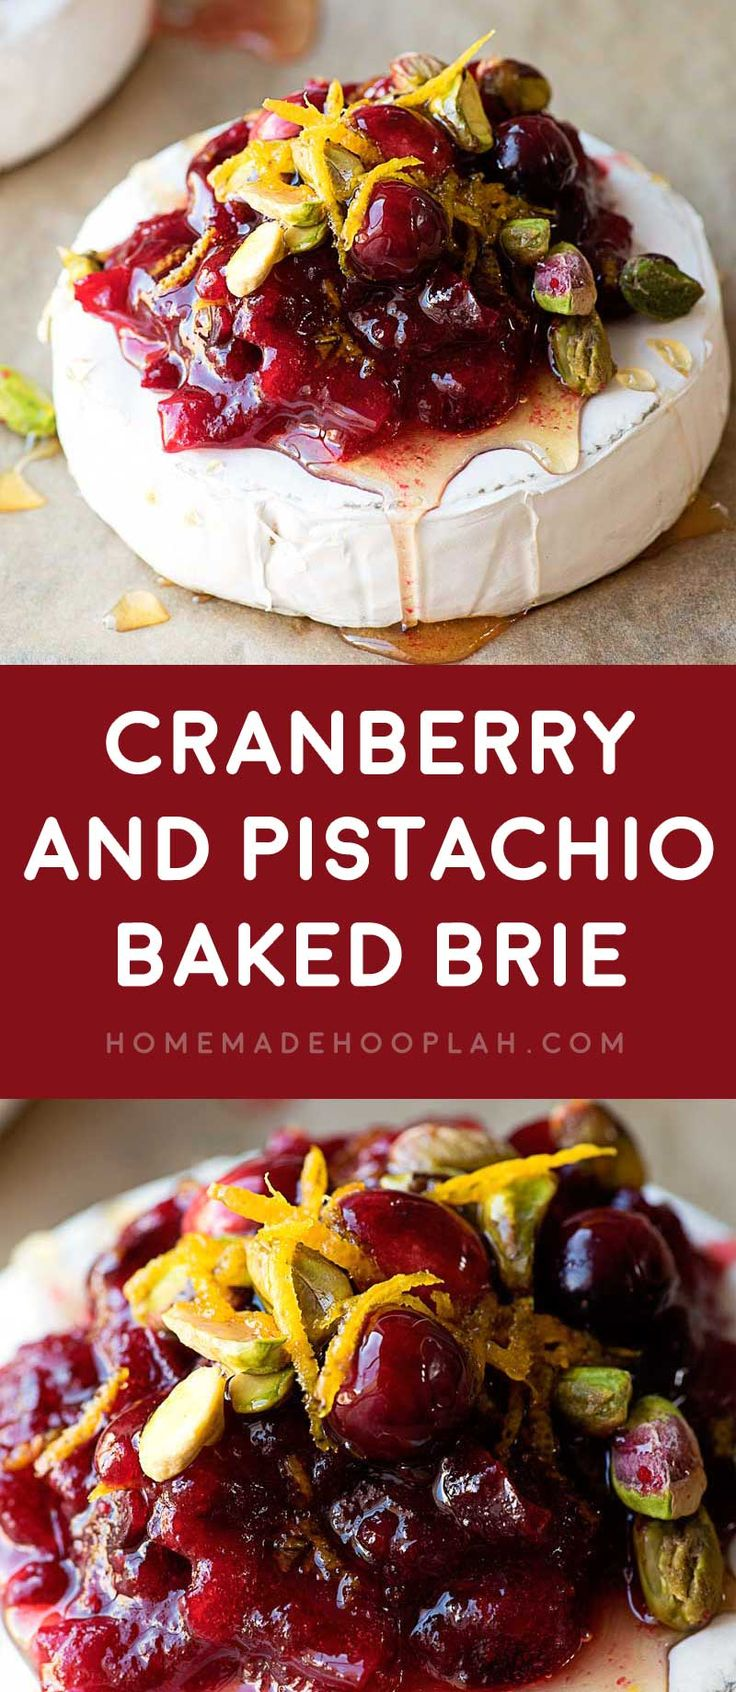 Cranberry and Pistachio Baked Brie! Warm baked brie with cranberry sauce, pistachios, orange zest, and Truvia Nectar. Serve with toasted bread or crackers for a festive cranberry appetizer!